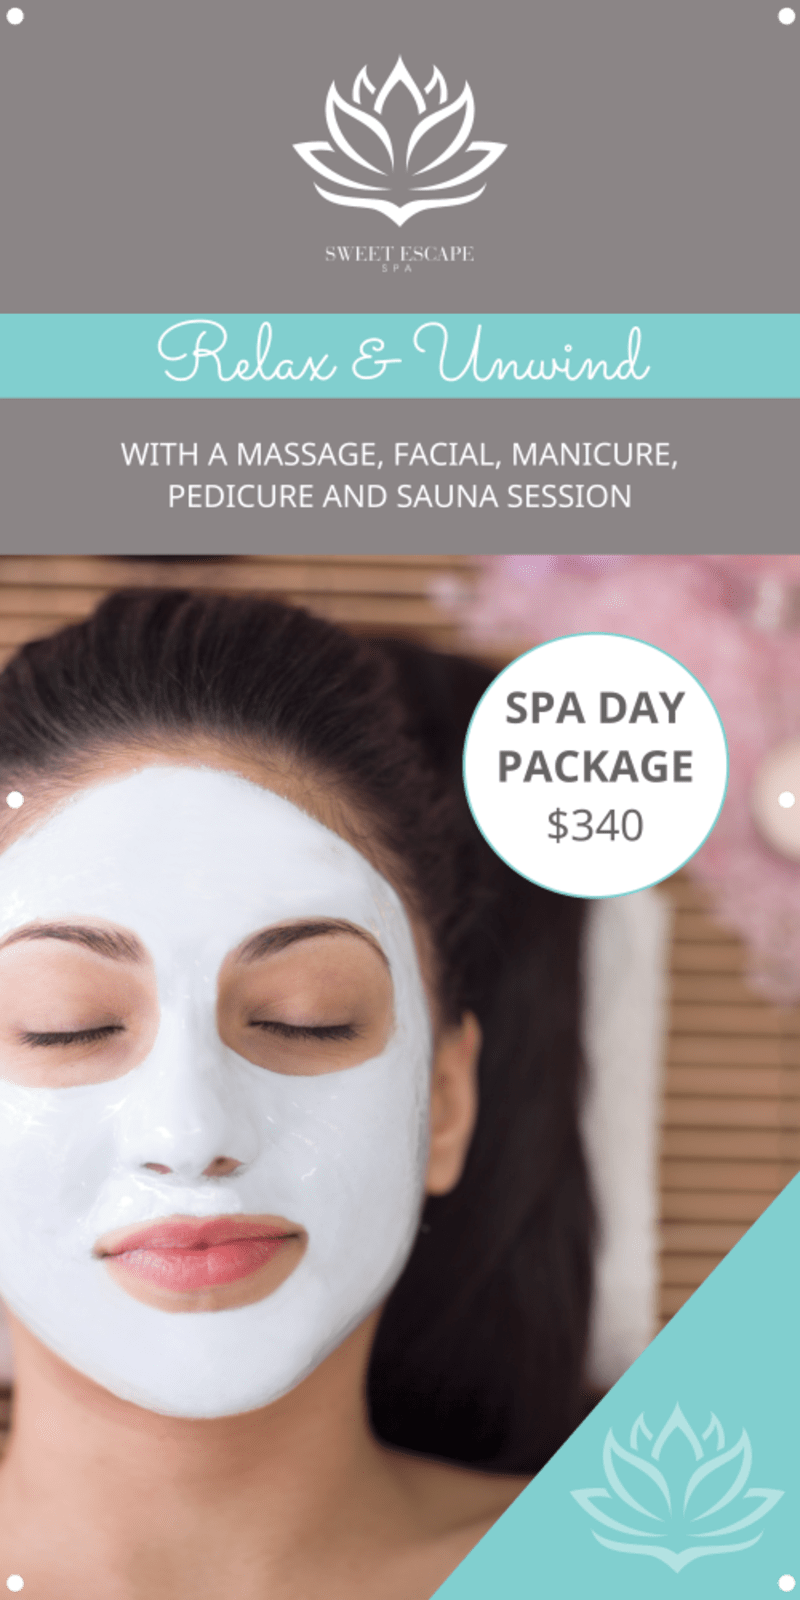 Relax Spa Banner Template Preview 2